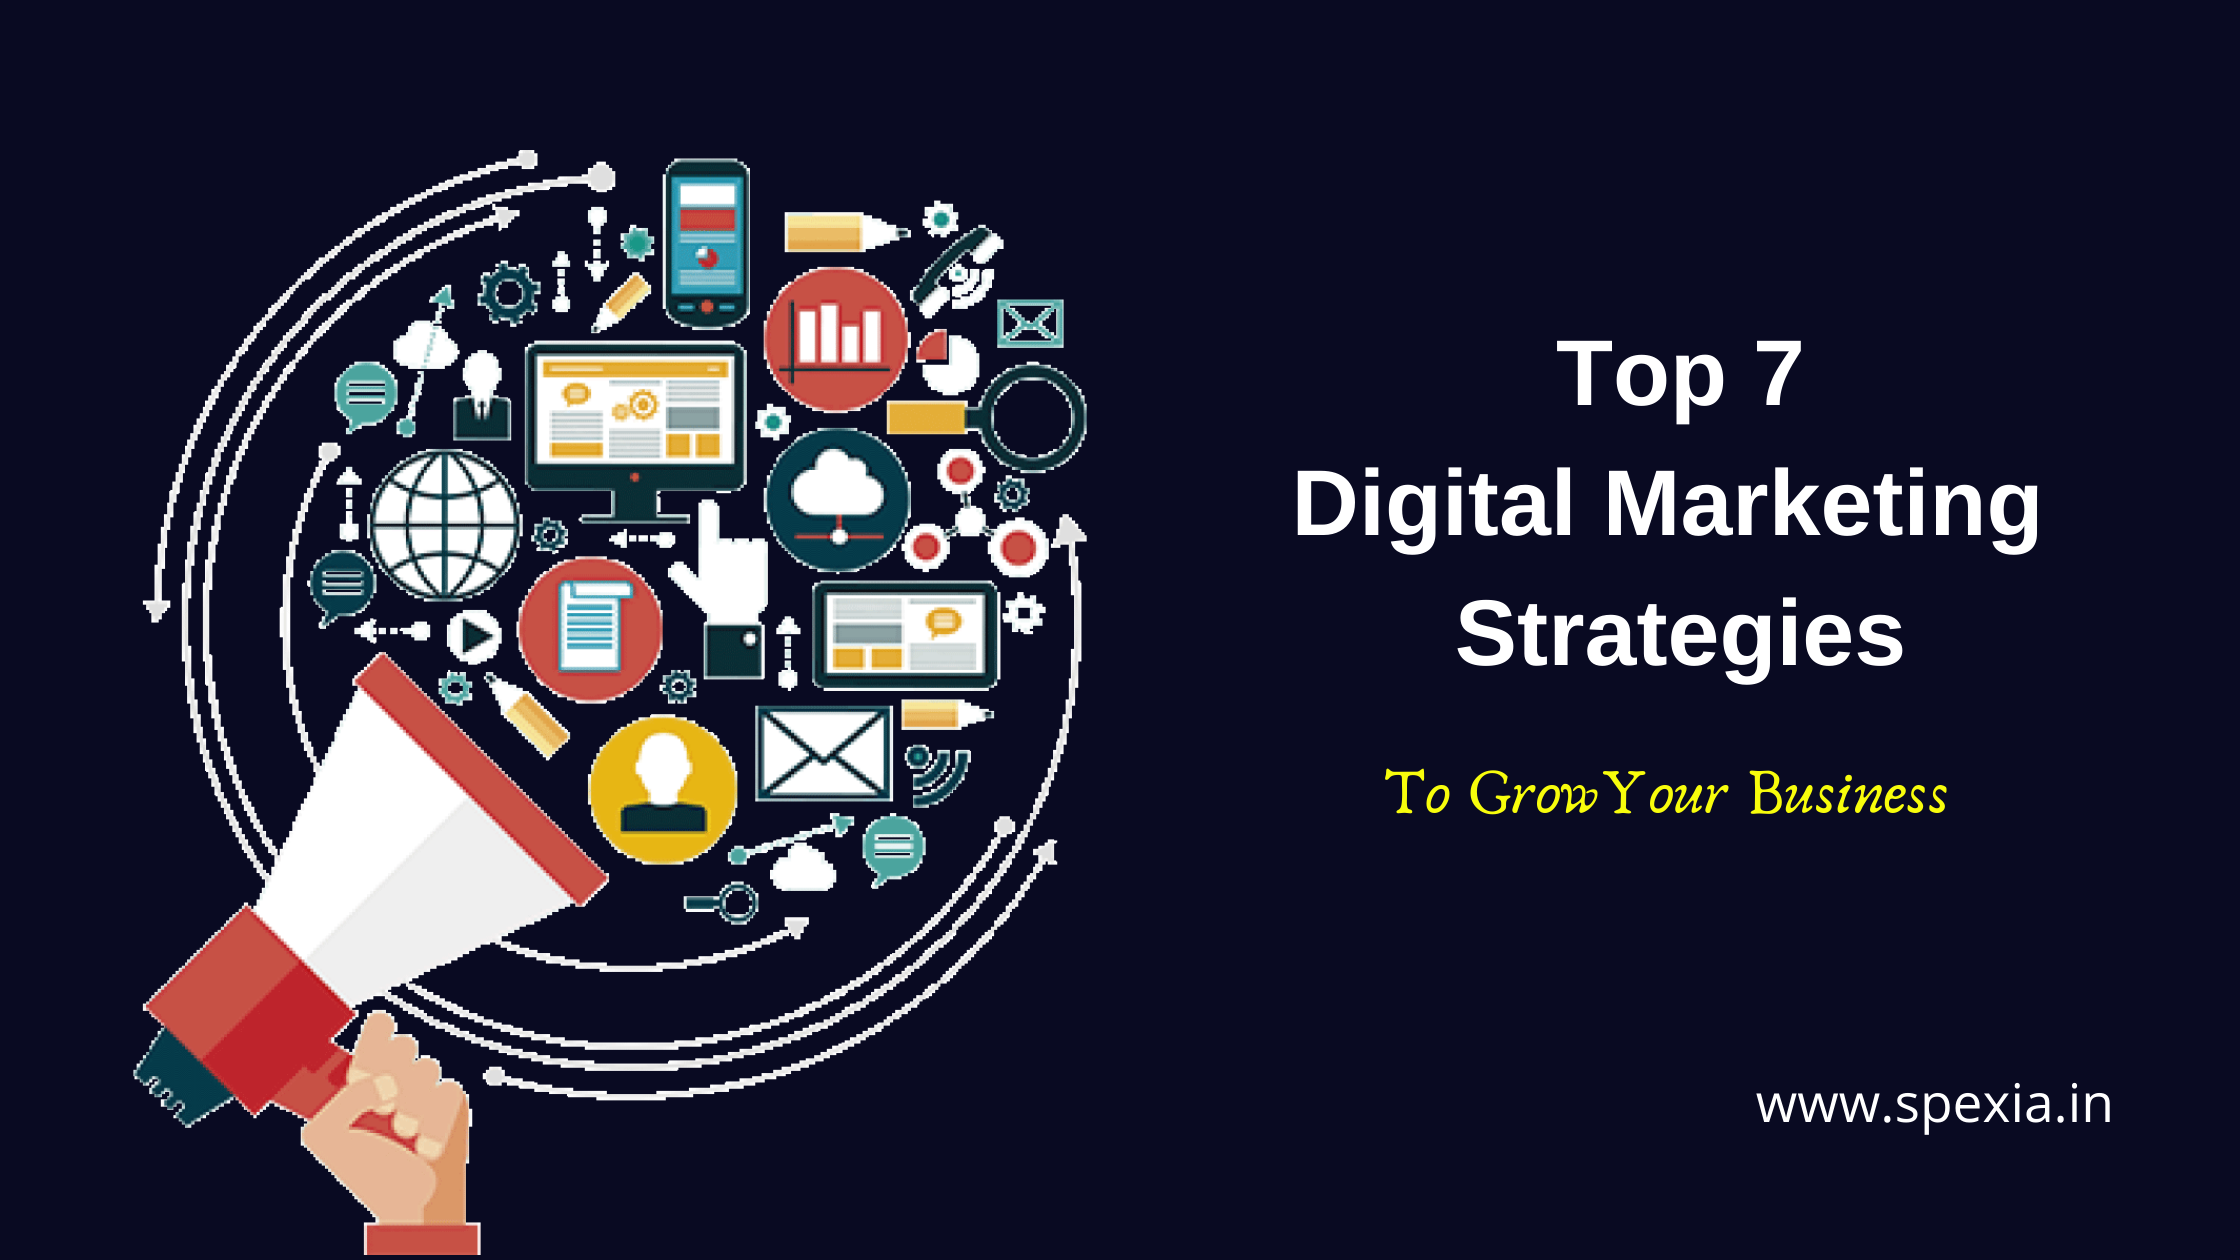 Top 7 Digital Marketing Strategies To Grow Your Business